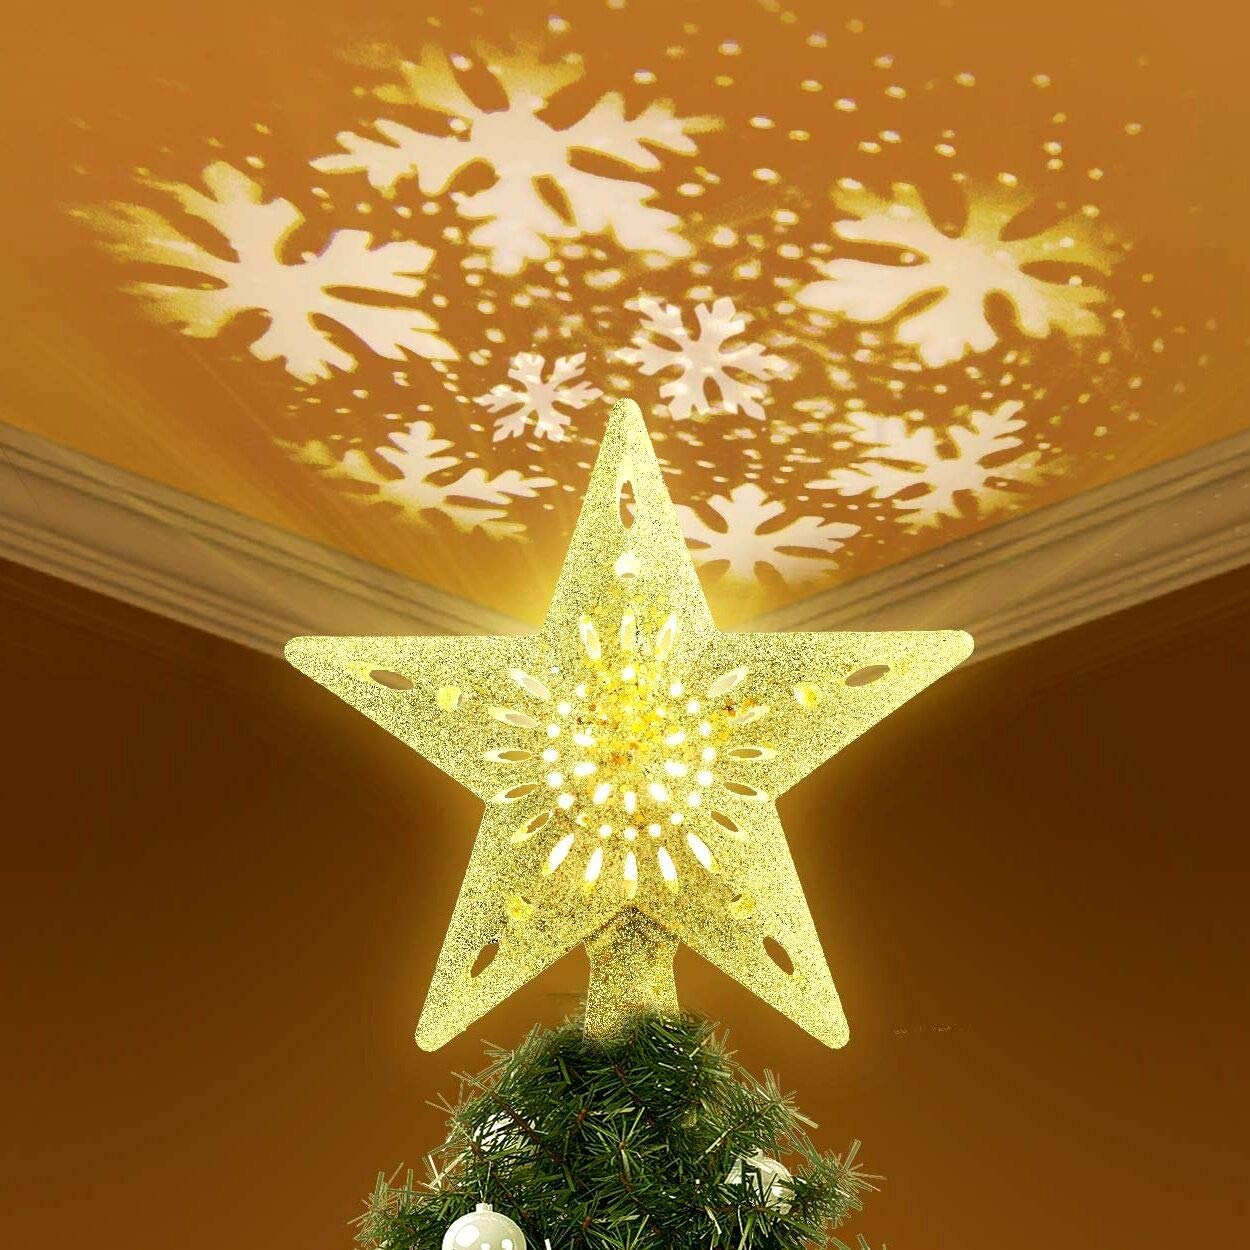 Handmade Products Custom Tree Star Christmas Tree Toppers Christmas Tree Topper Extra Large Gold Star Home Kitchen Handmade Products